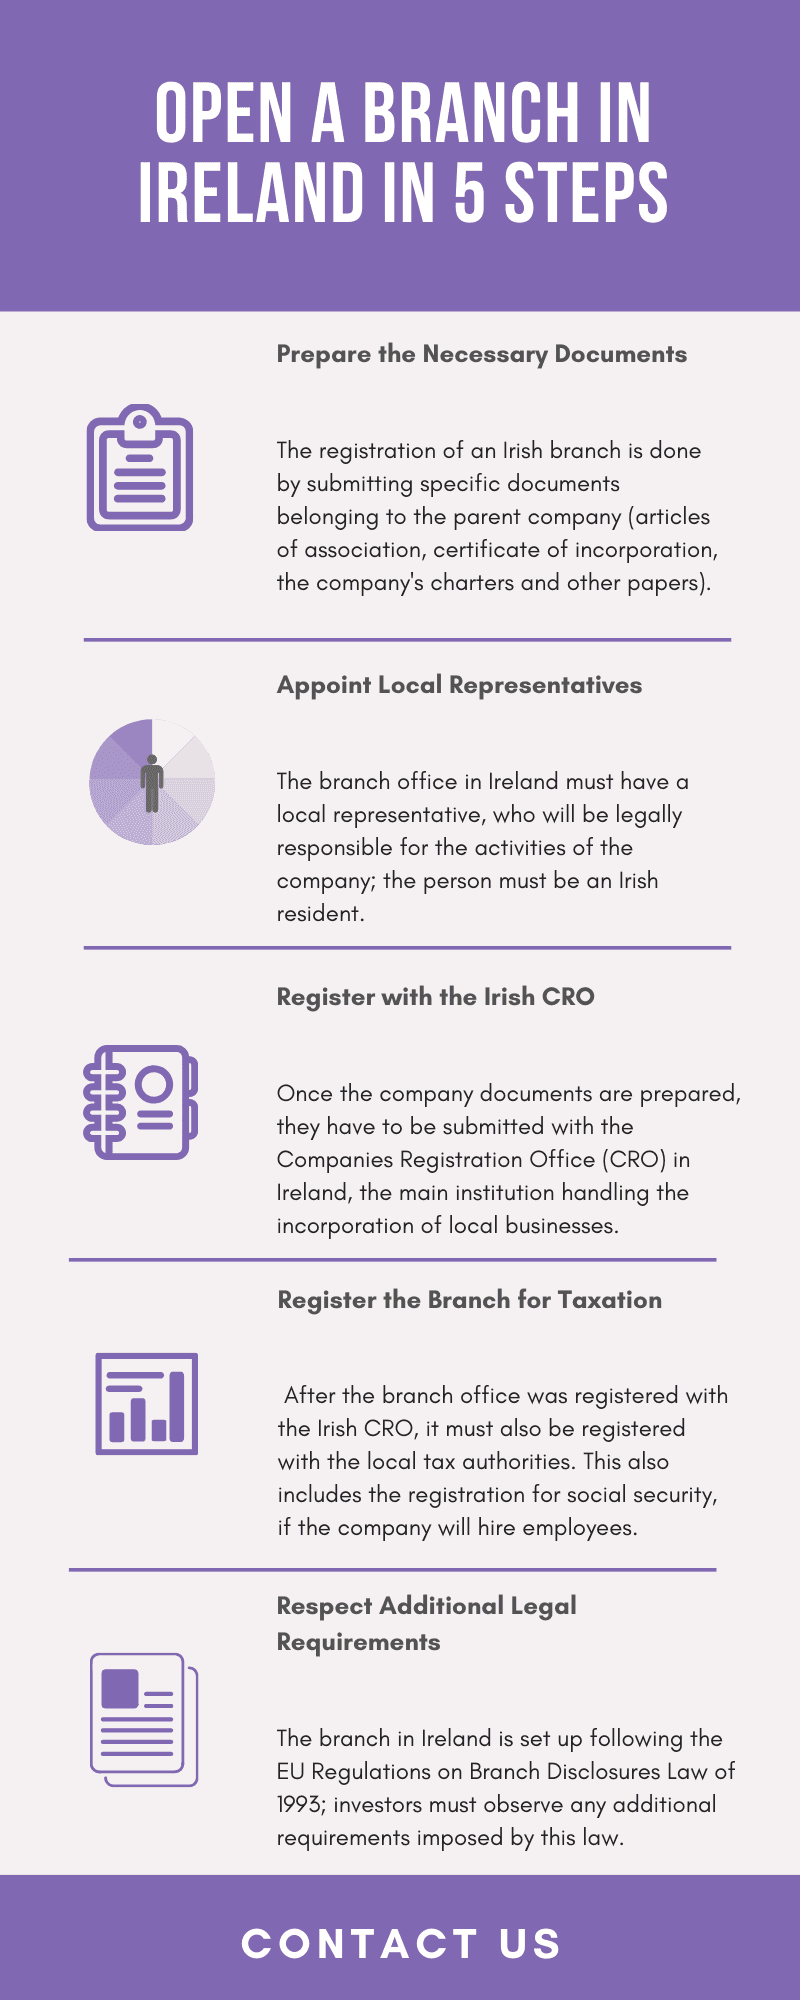 Open a Branch in Ireland in 5 Steps - infografic.png